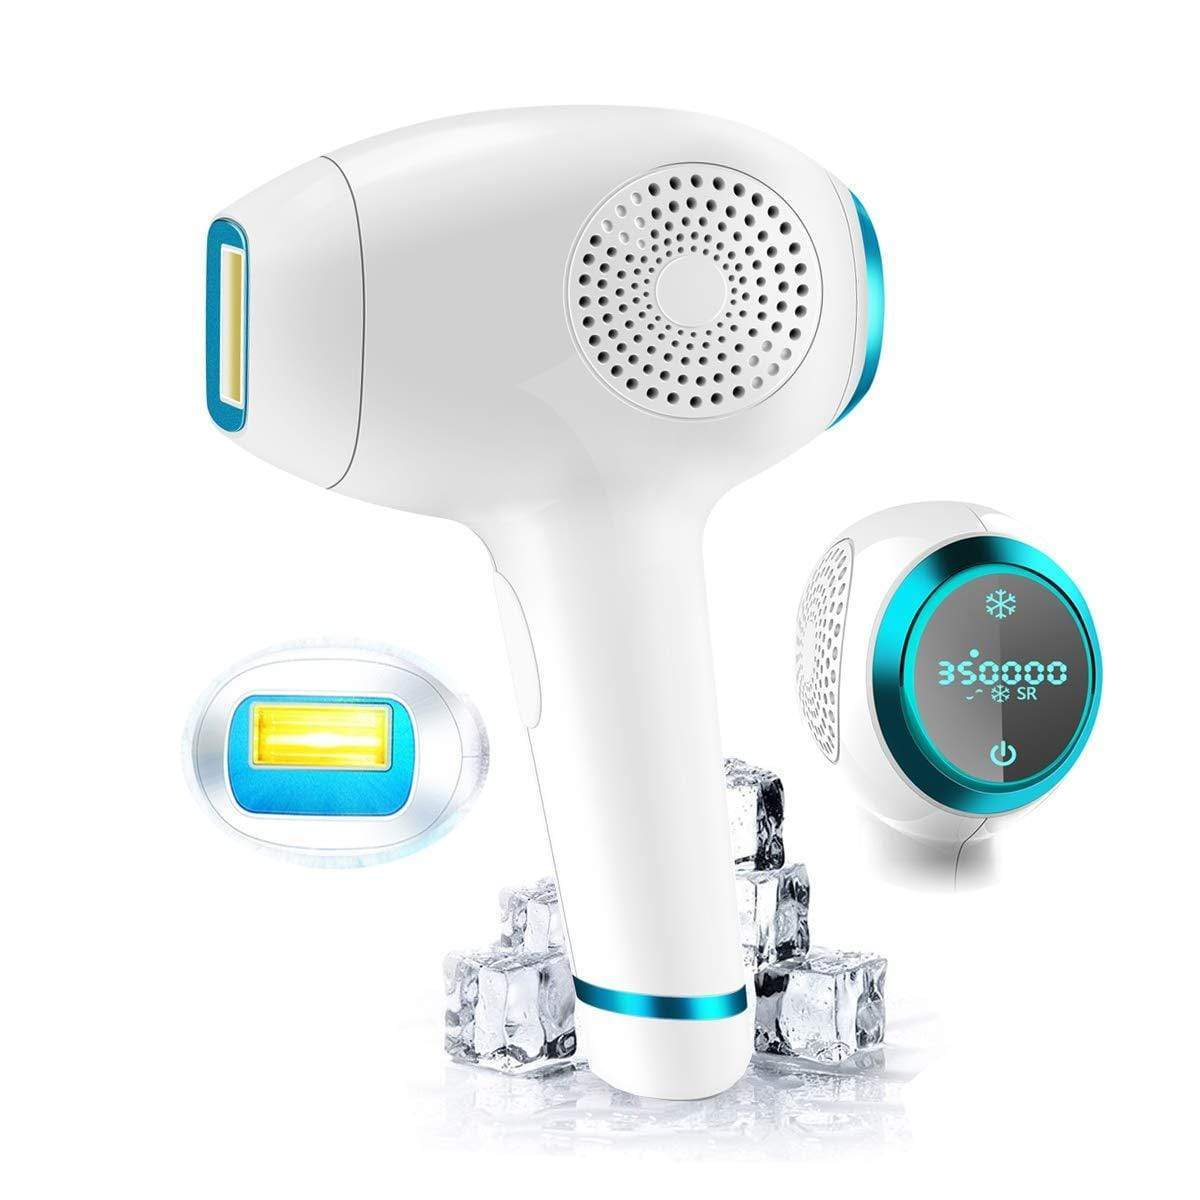 Permanent 3 in 1 IPL 350,000 Flashes Hair Removal ICE Cold Device FIRST CLASS CREW White